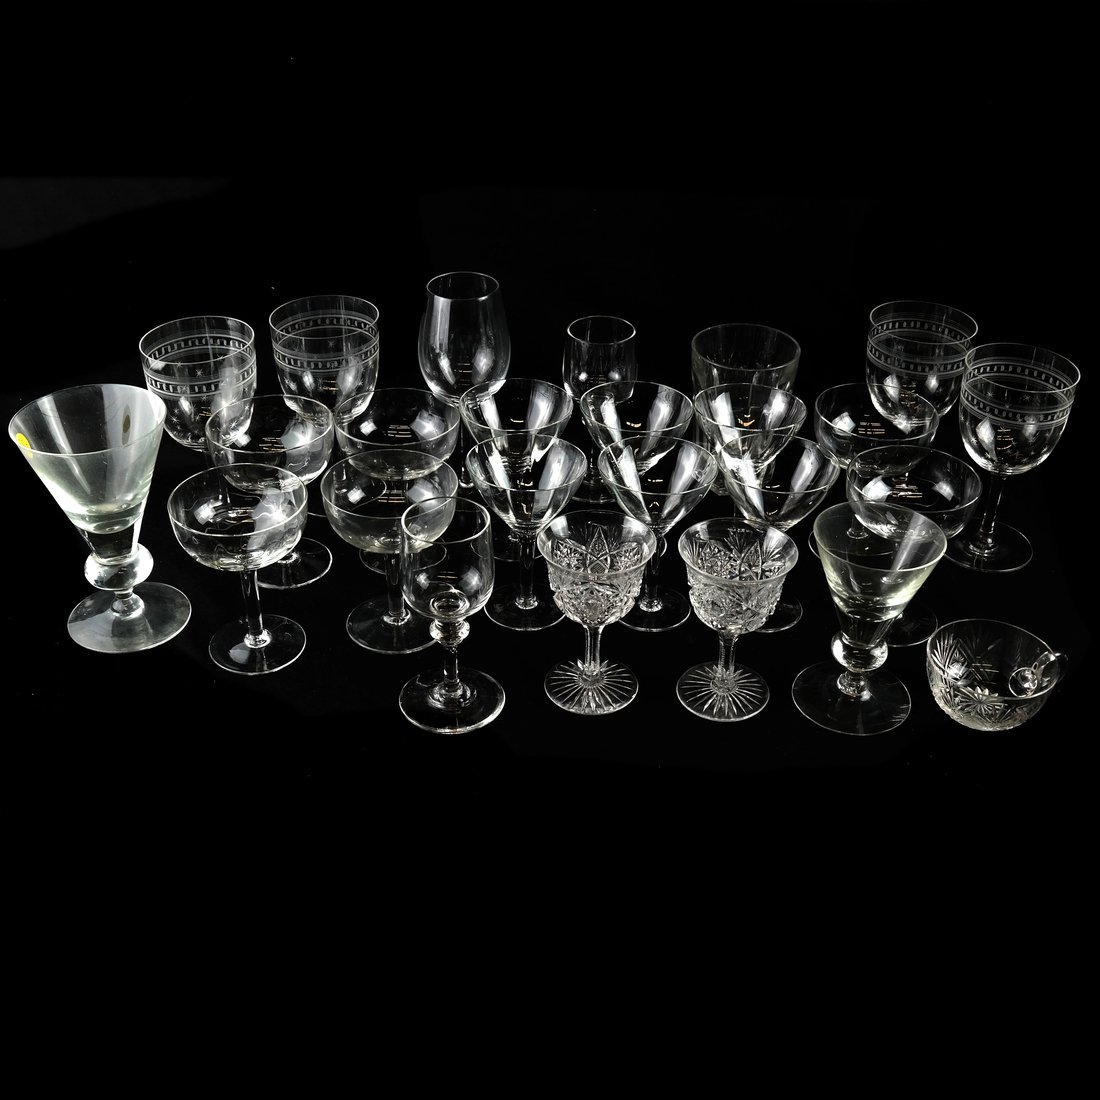 25 Various Glass Stemware